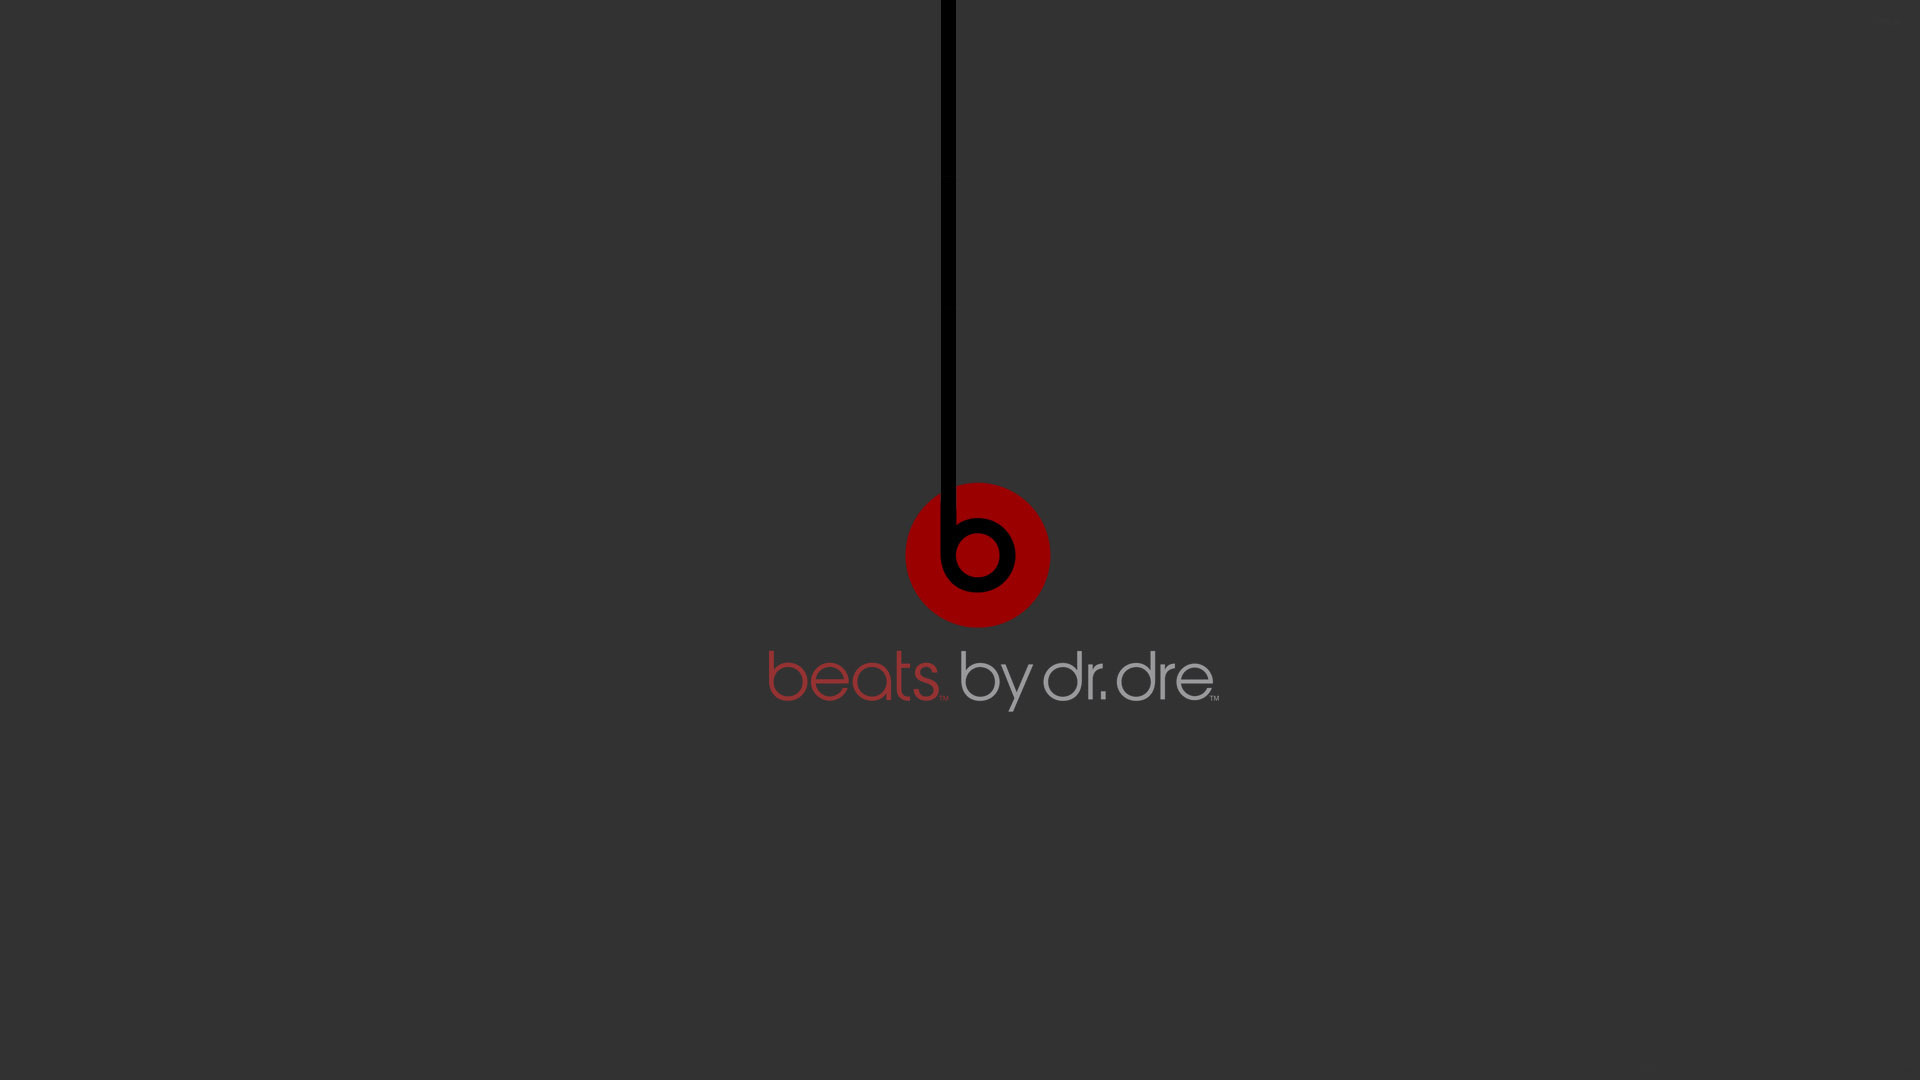 Beats Audio Wallpaper